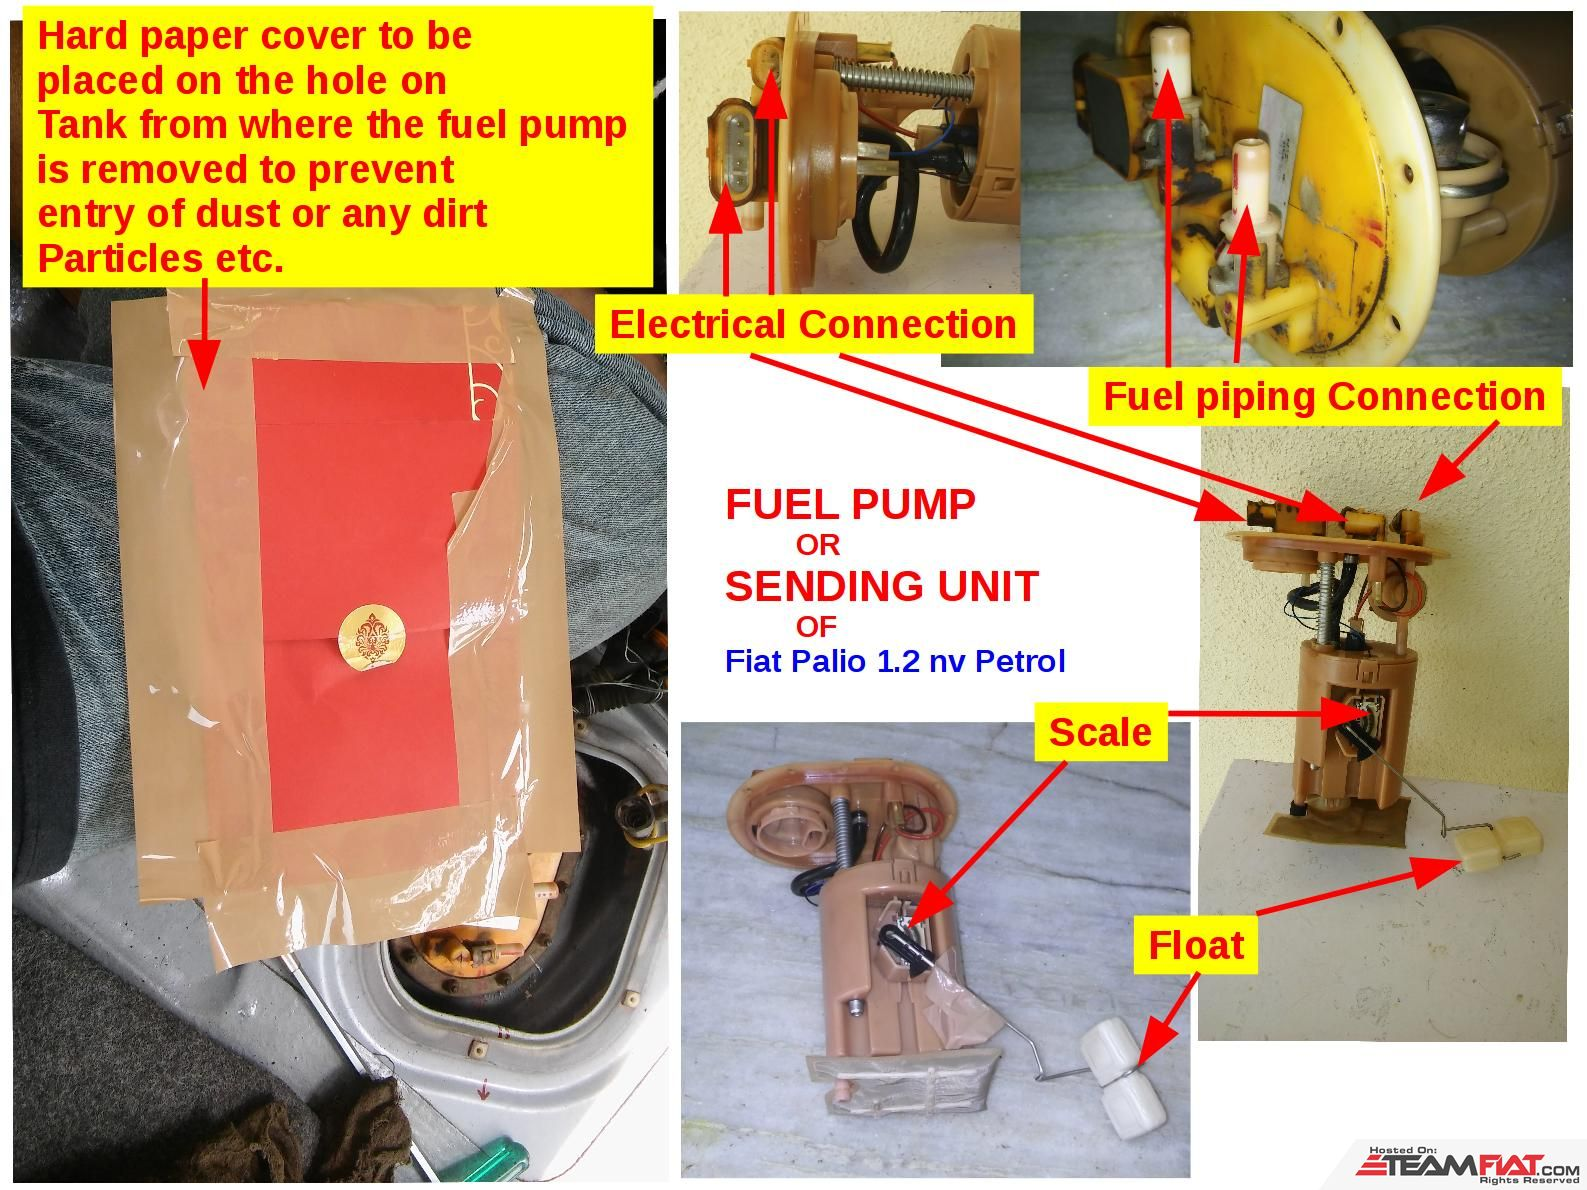 004-Cover & Fuel Pump.jpg